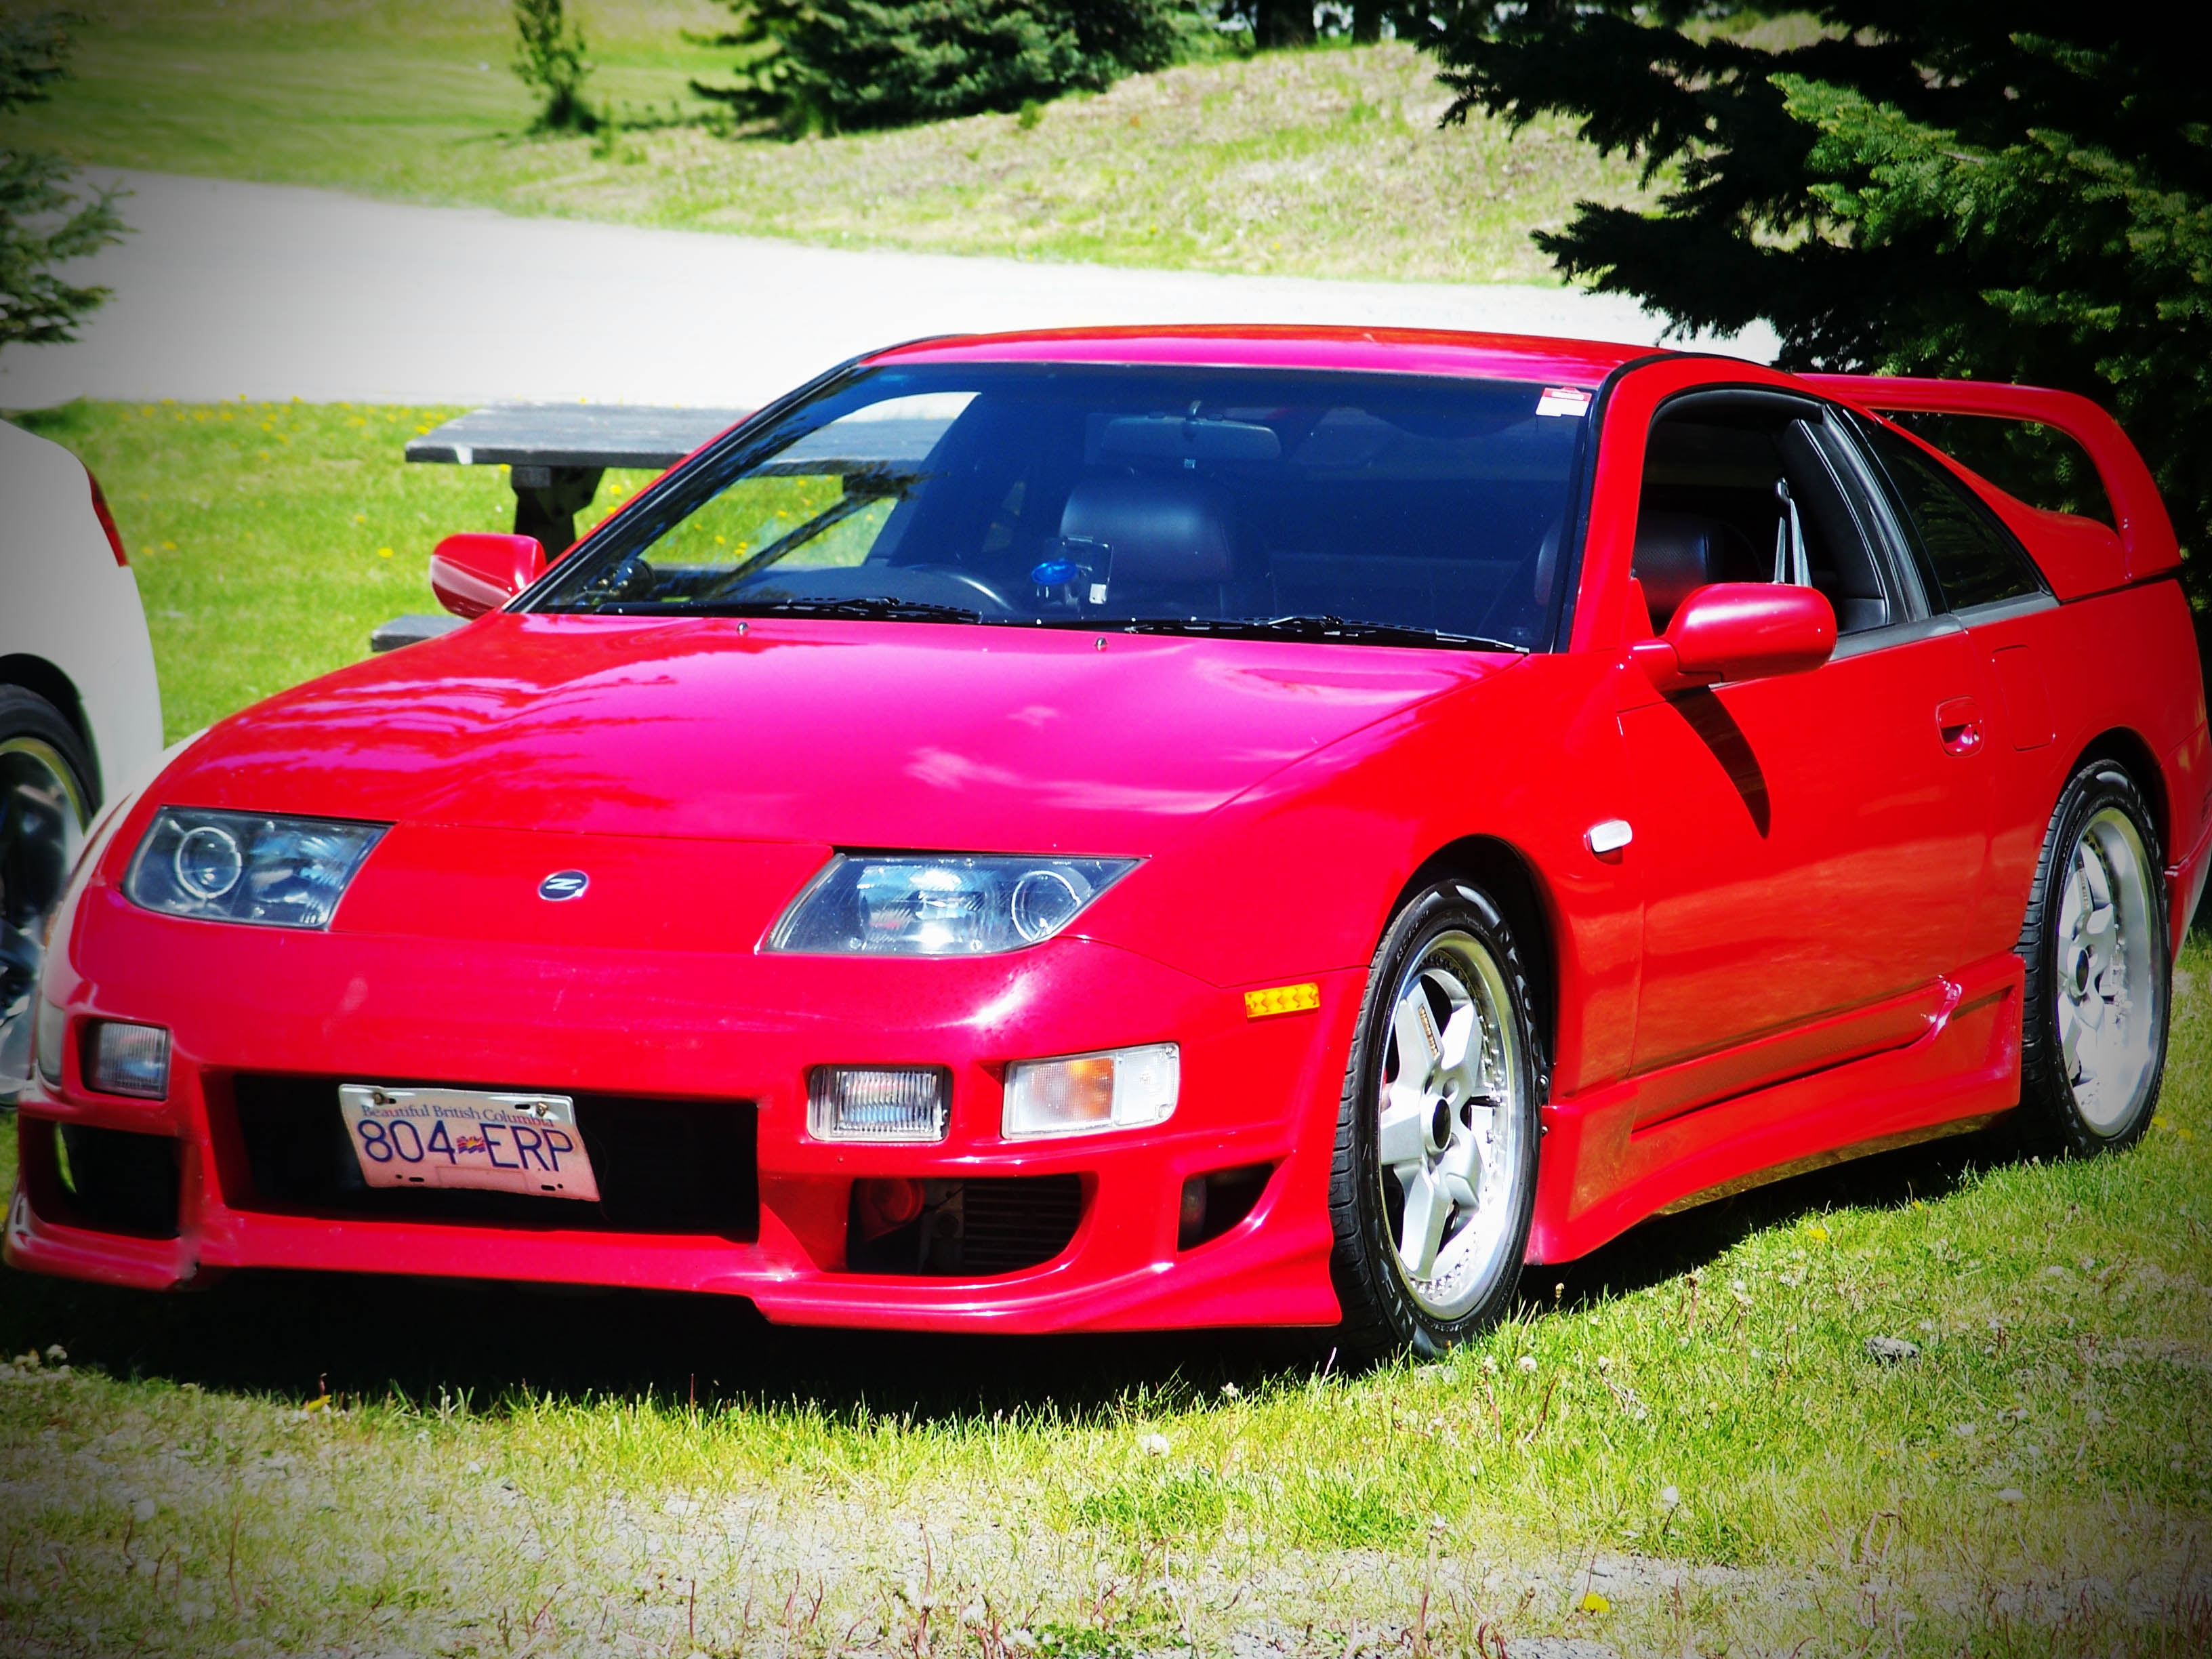 With Wiring Diagram For 1984 Nissan 300zx Turbo Further Nissan 300zx